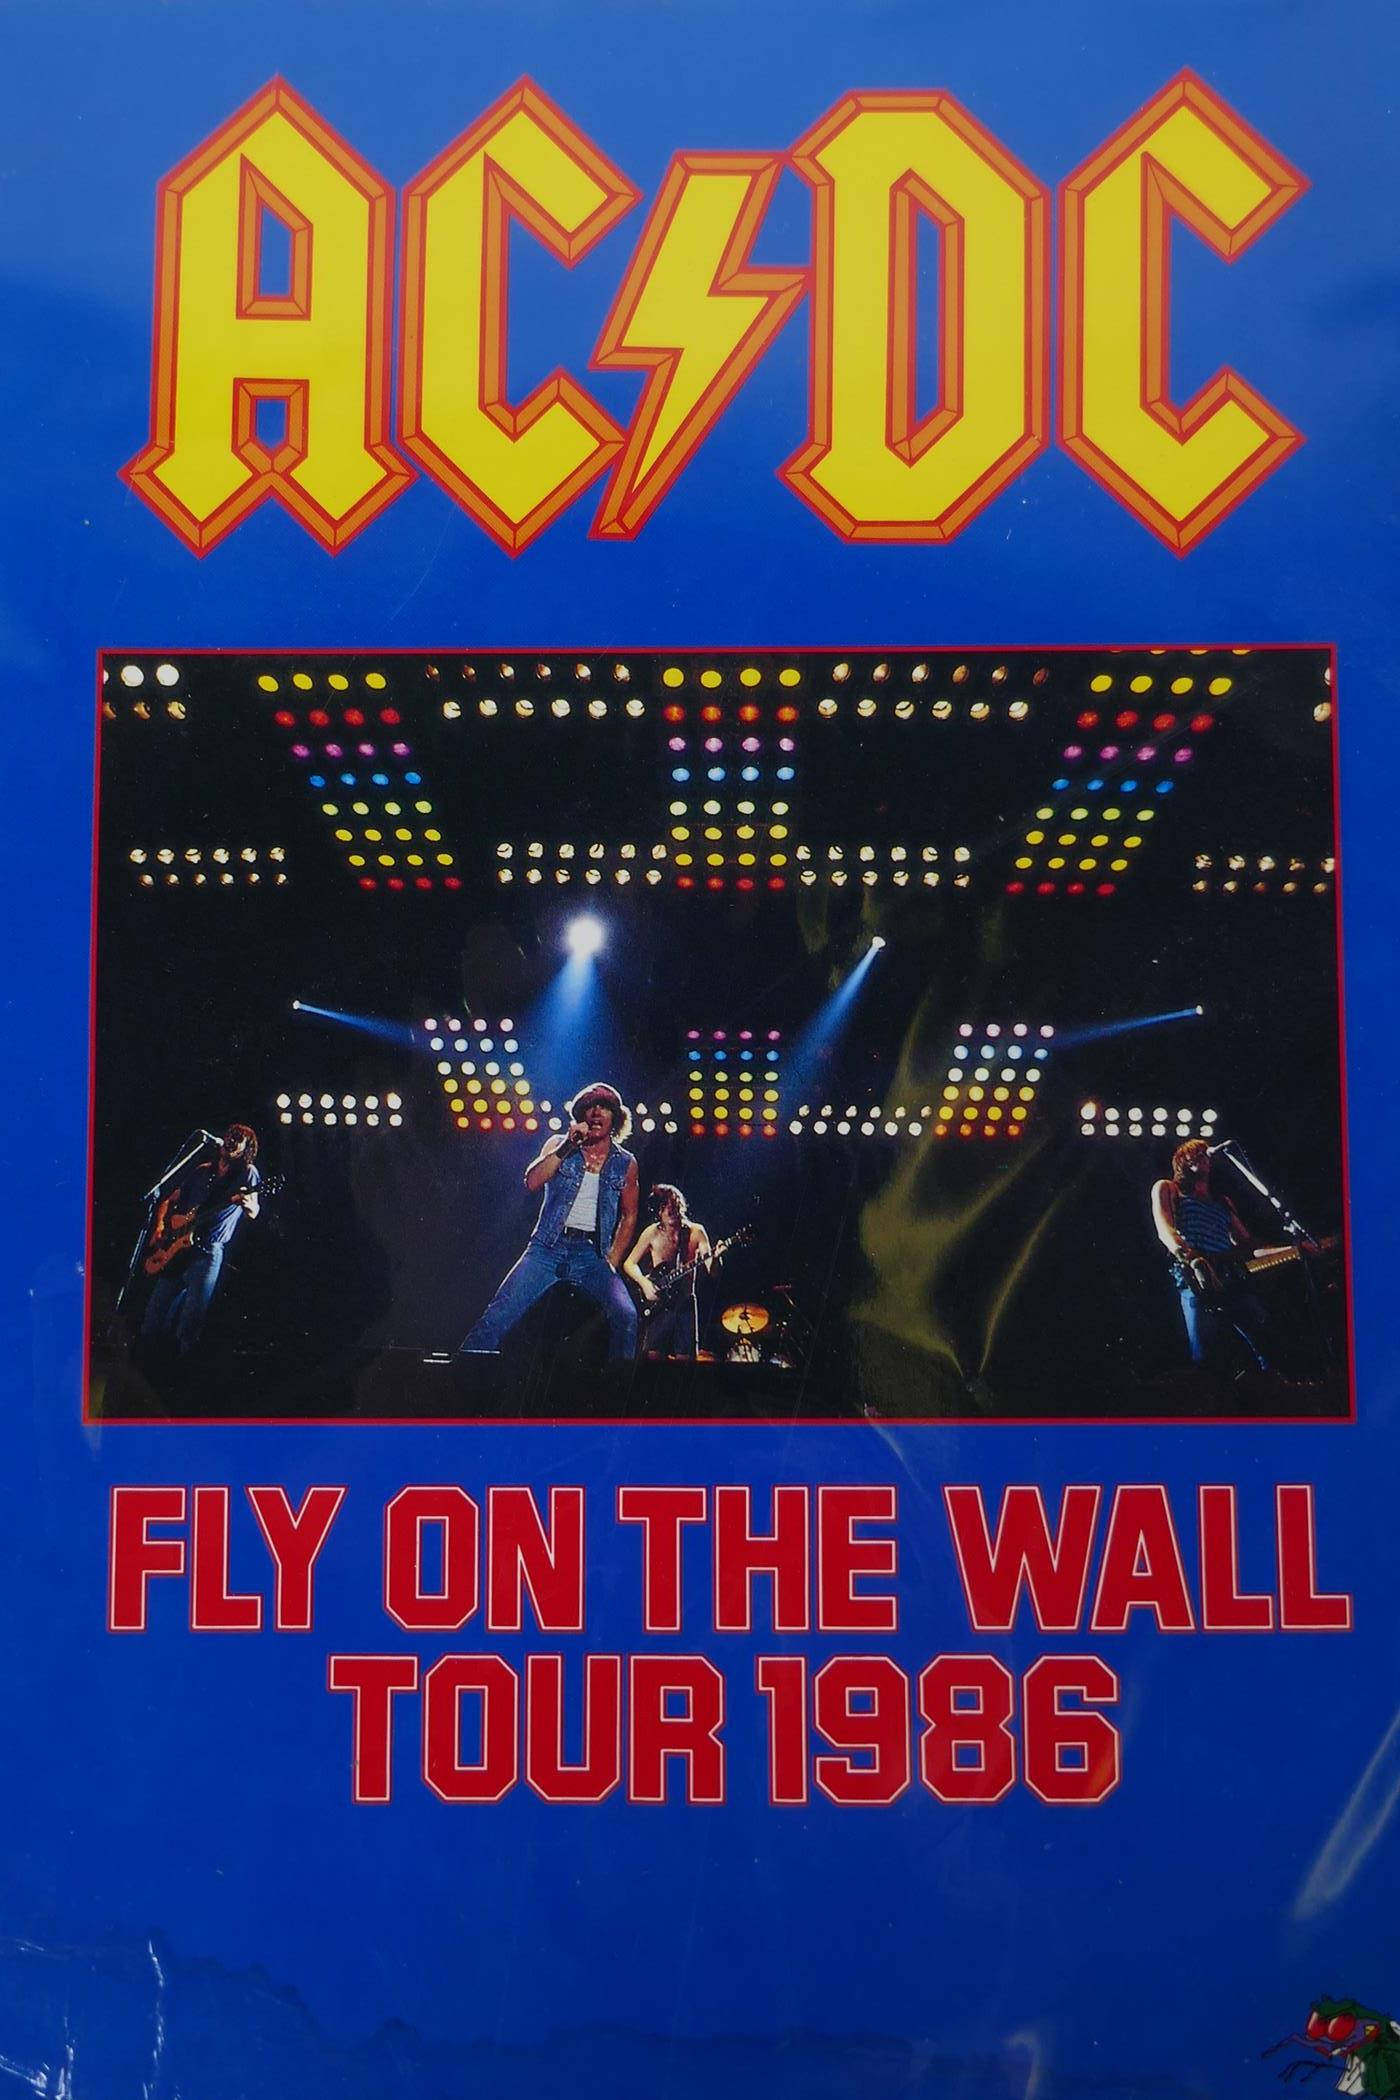 An AC/DC 'Fly on the Wall' World Tour 1986, official concert tour programme, 24 pages including tour